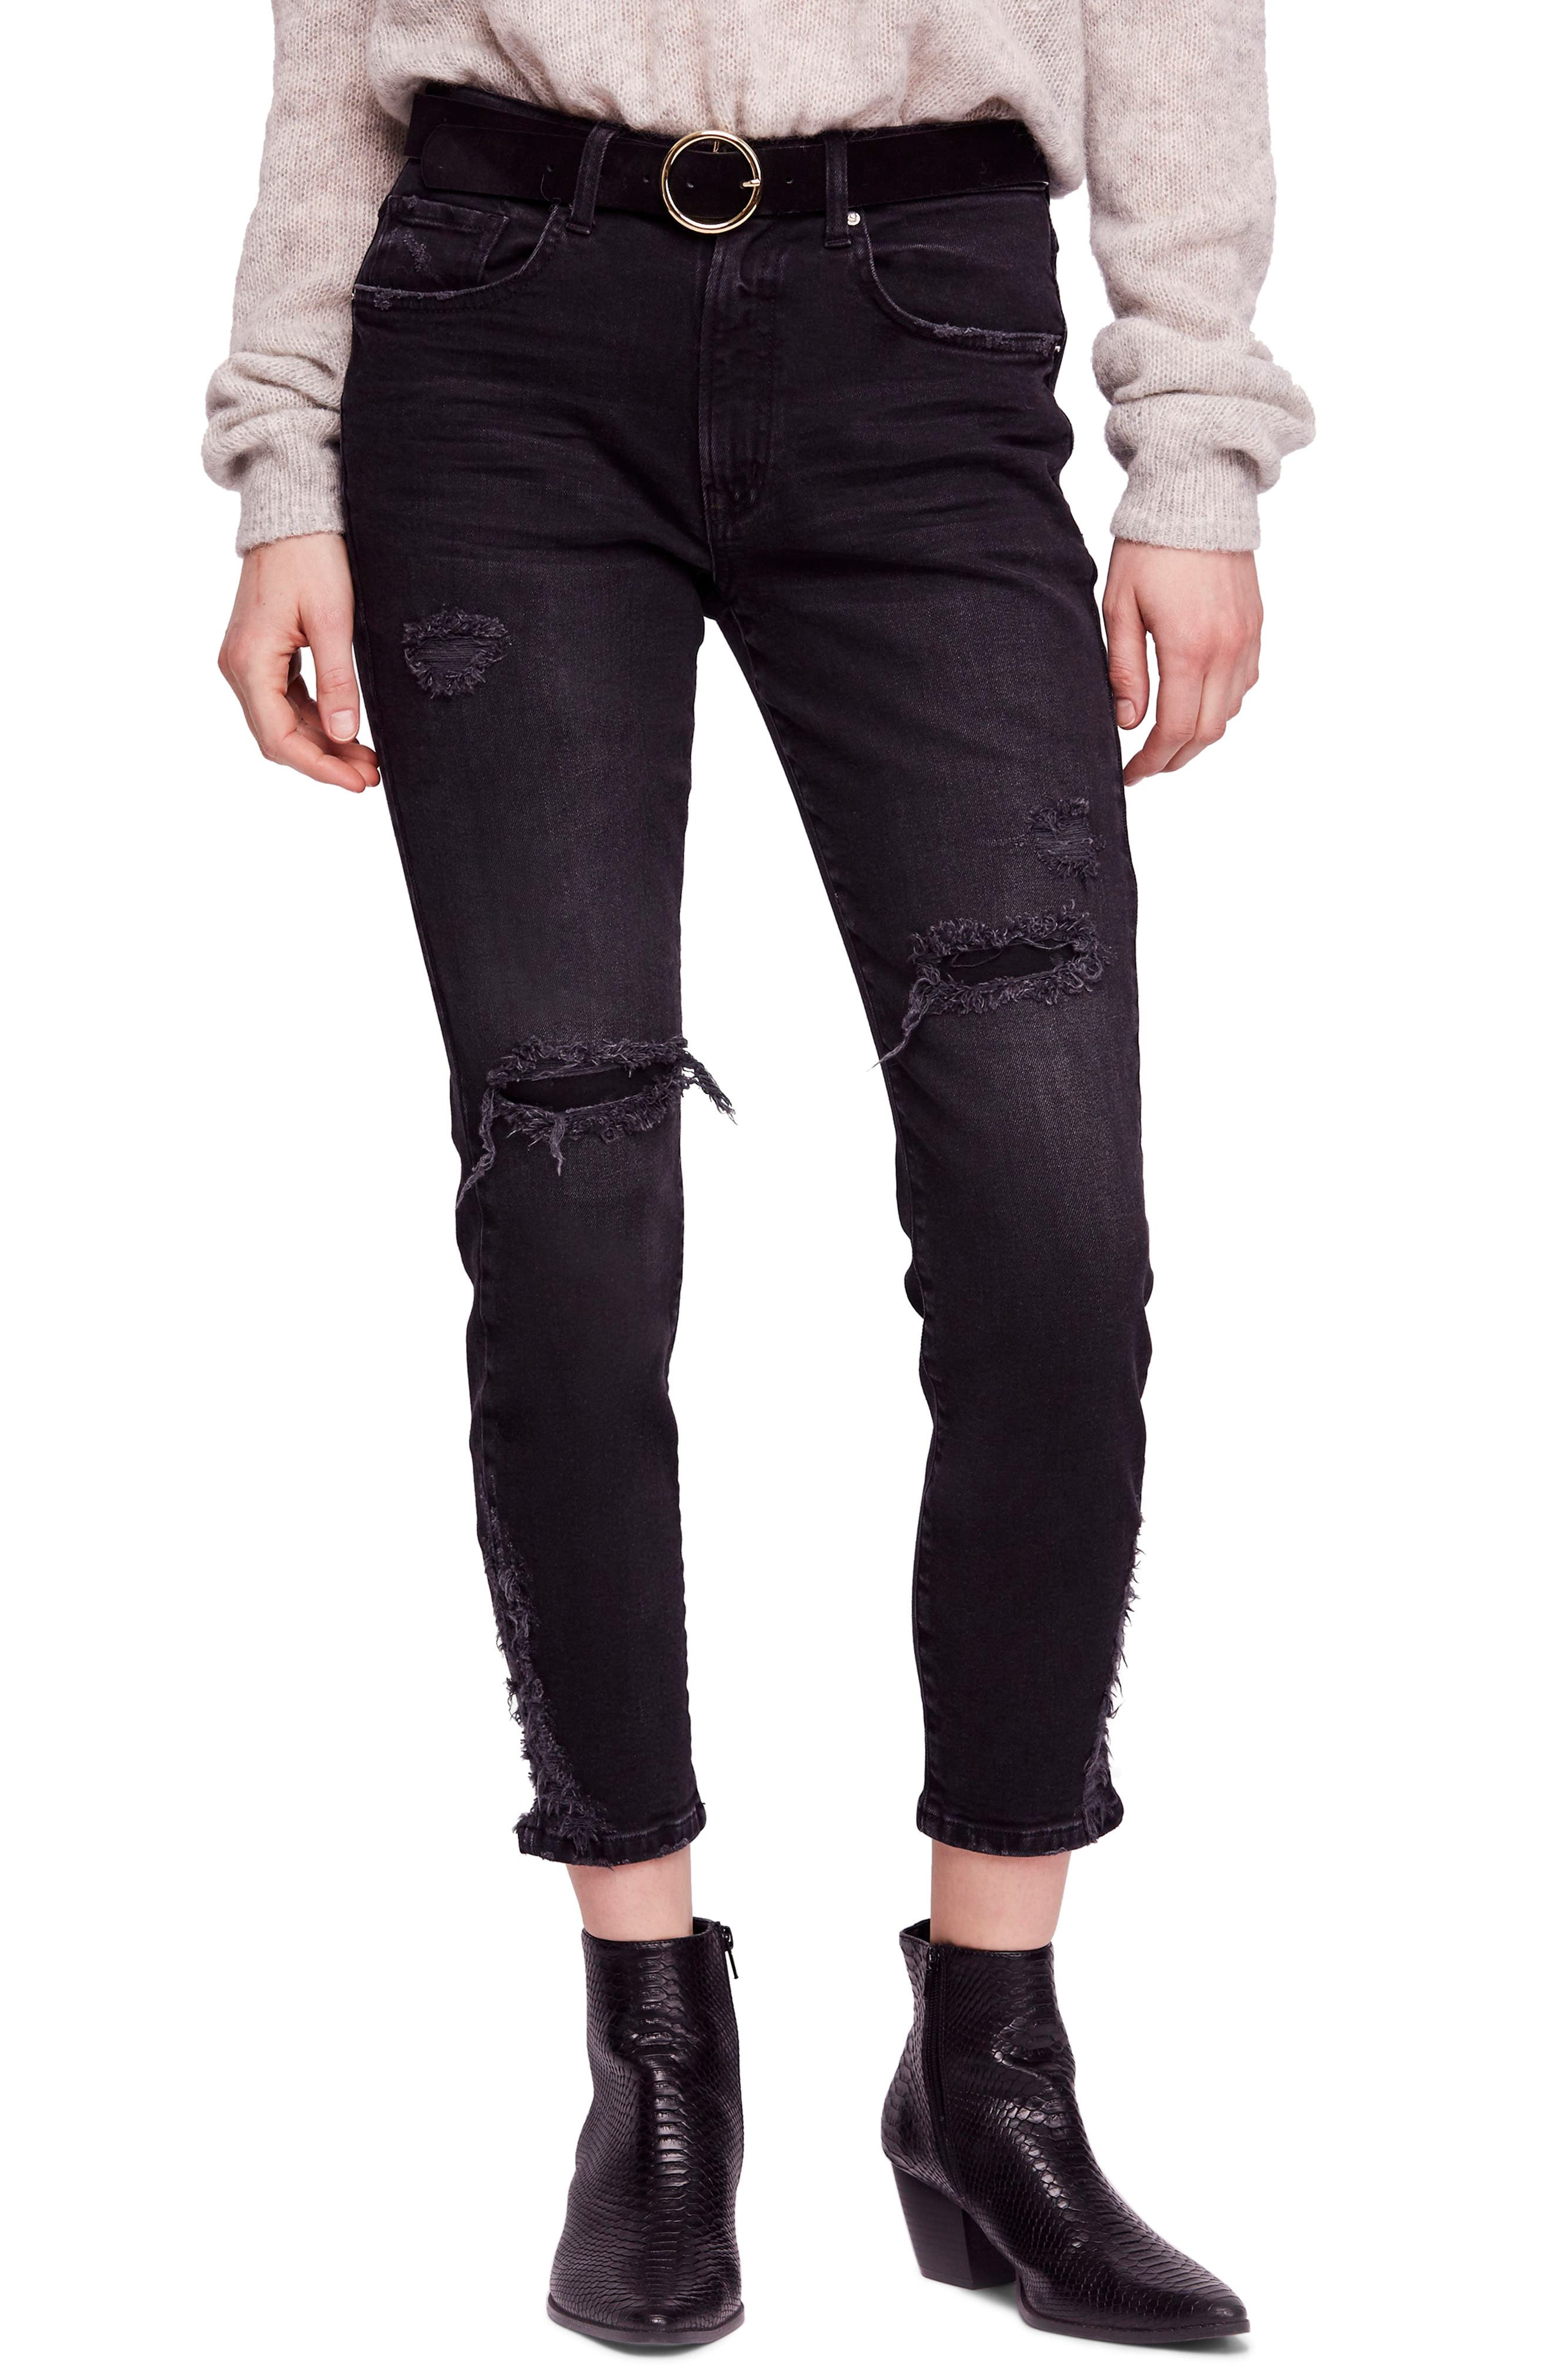 About a Girl Ripped High Waist Crop Skinny Jeans,                             Main thumbnail 1, color,                             BLACK